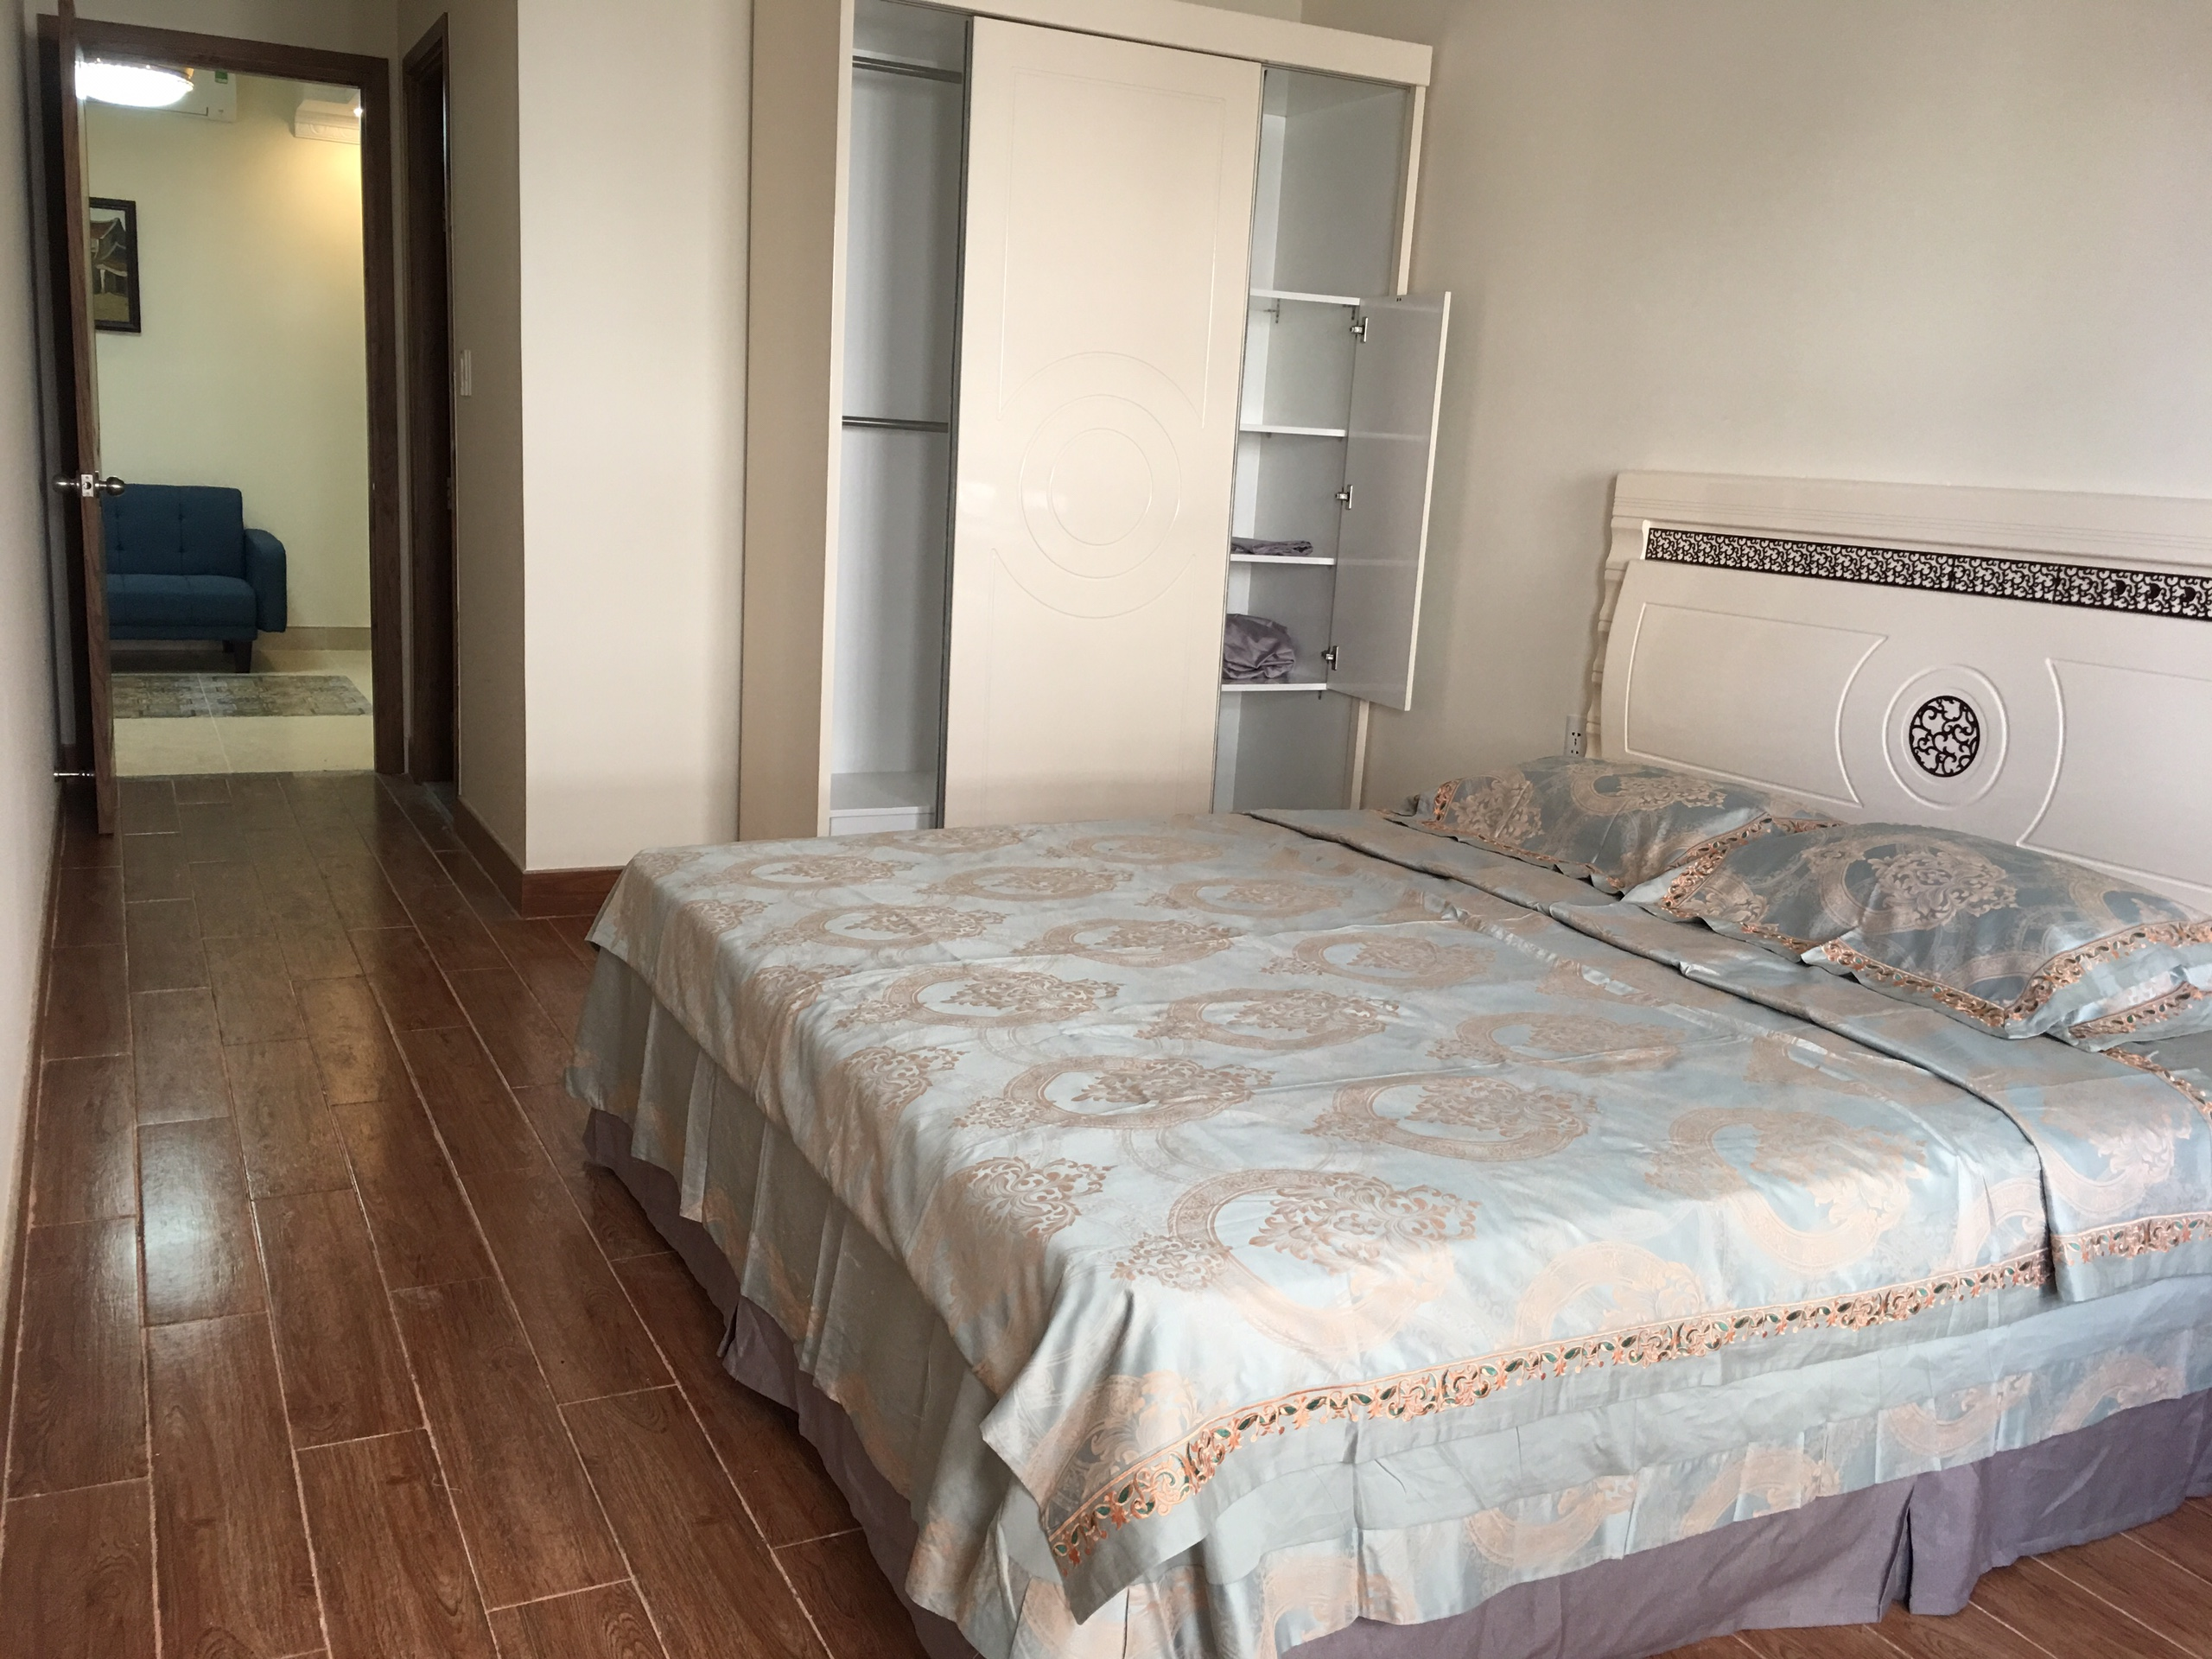 Serviced apartment for rent D299477 (7)